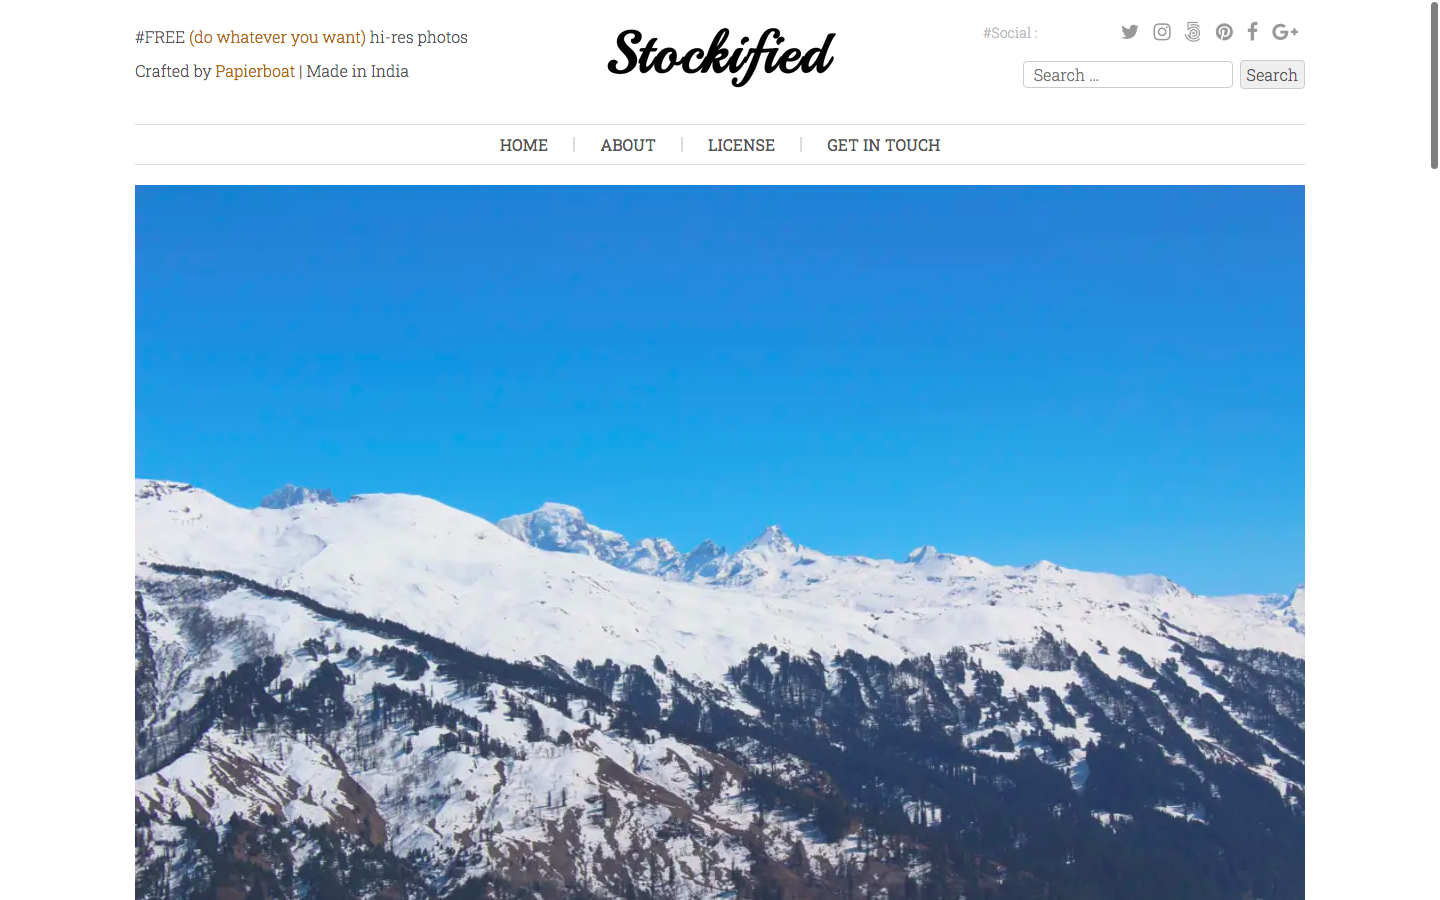 Stockified